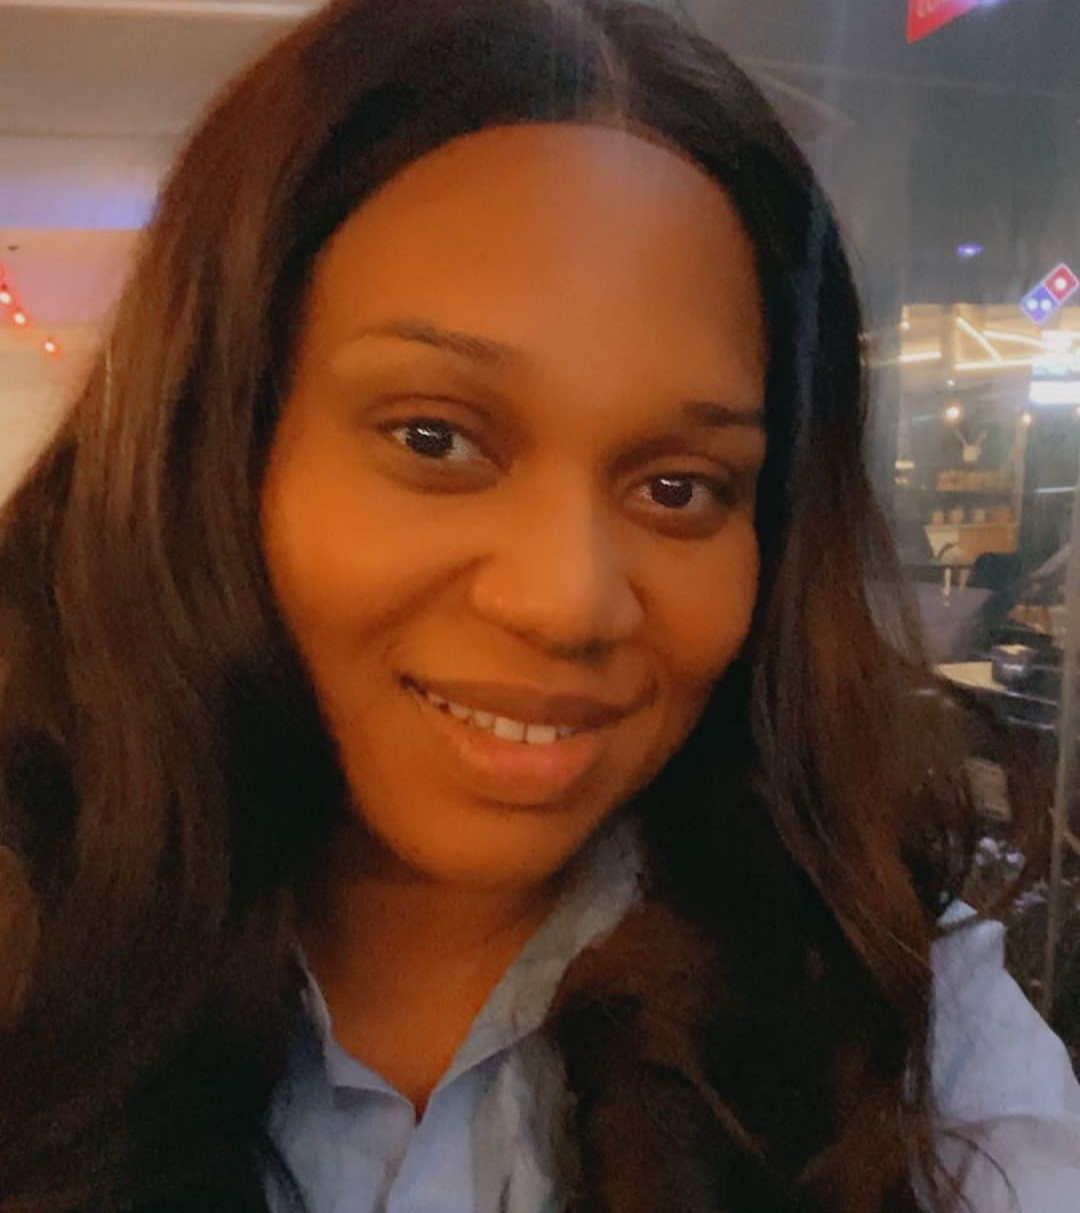 """6164ab1c5f886 - """"Nobody warned me. Being a wife in Africa is not easy"""" Sandra Iheuwa says two months after her wedding"""